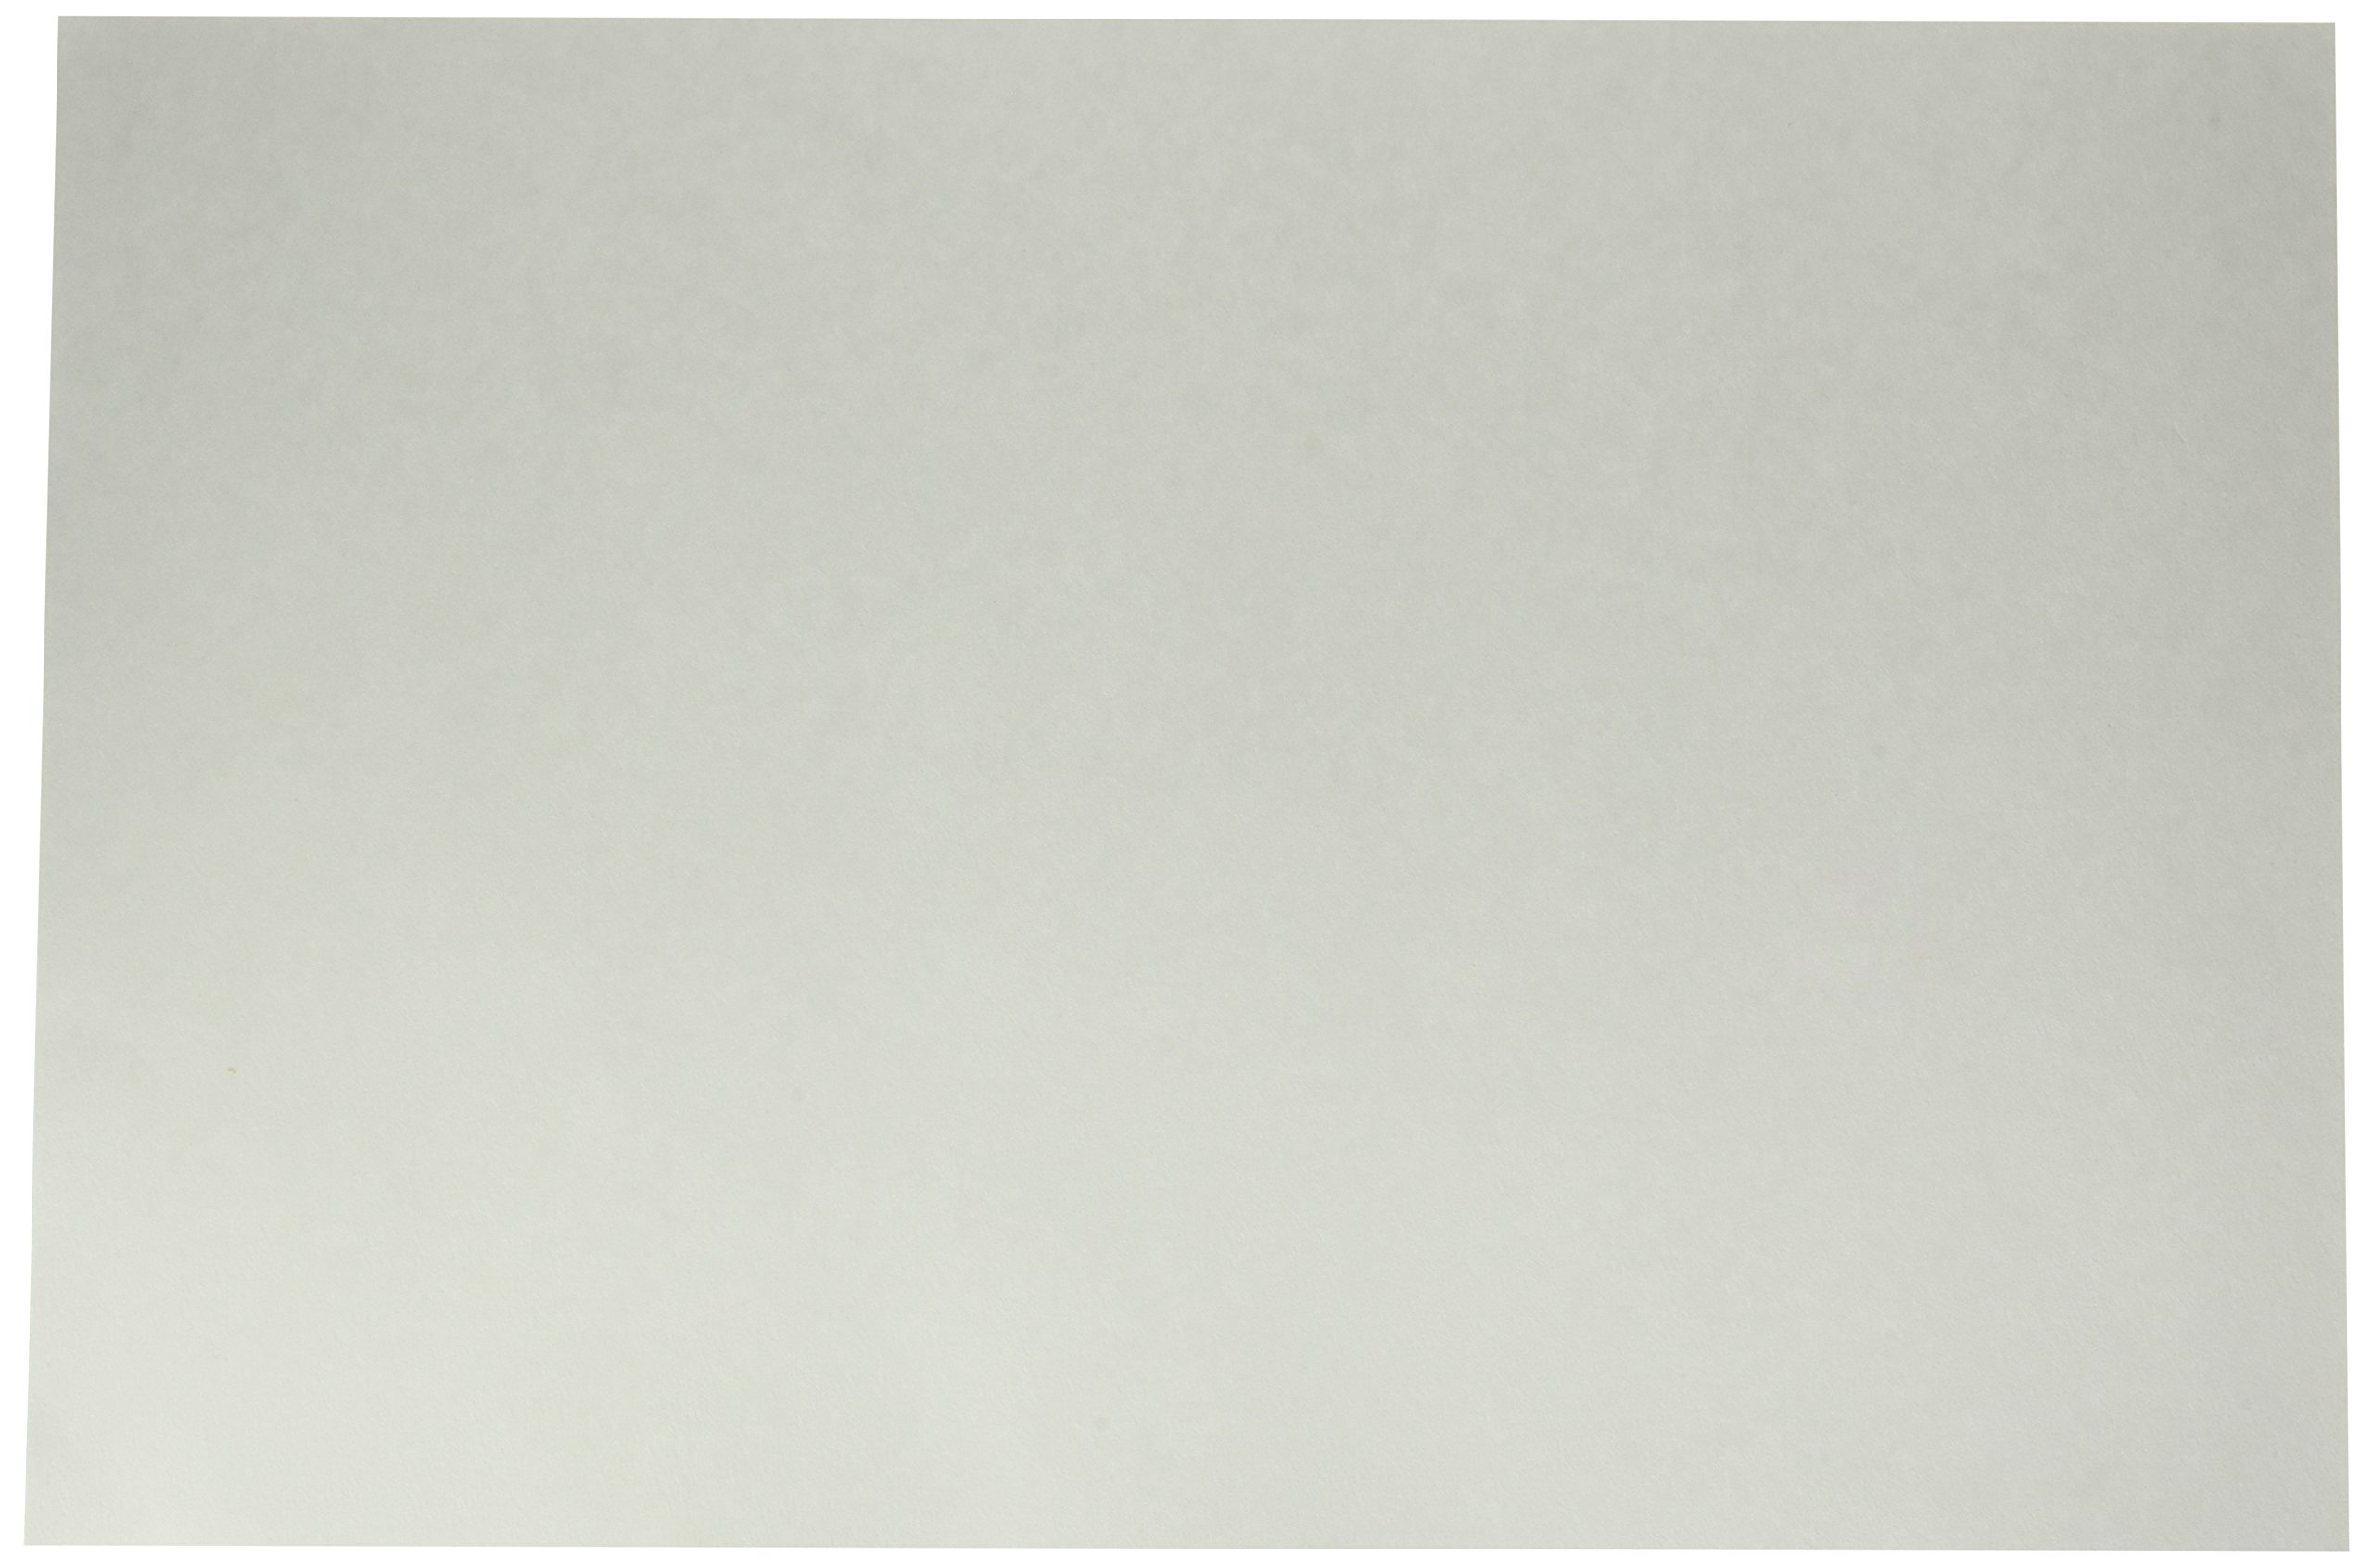 School Smart 85484 White Tagboard - Medium Weight - 12 x 18 inches - Pack of 100 Sheets